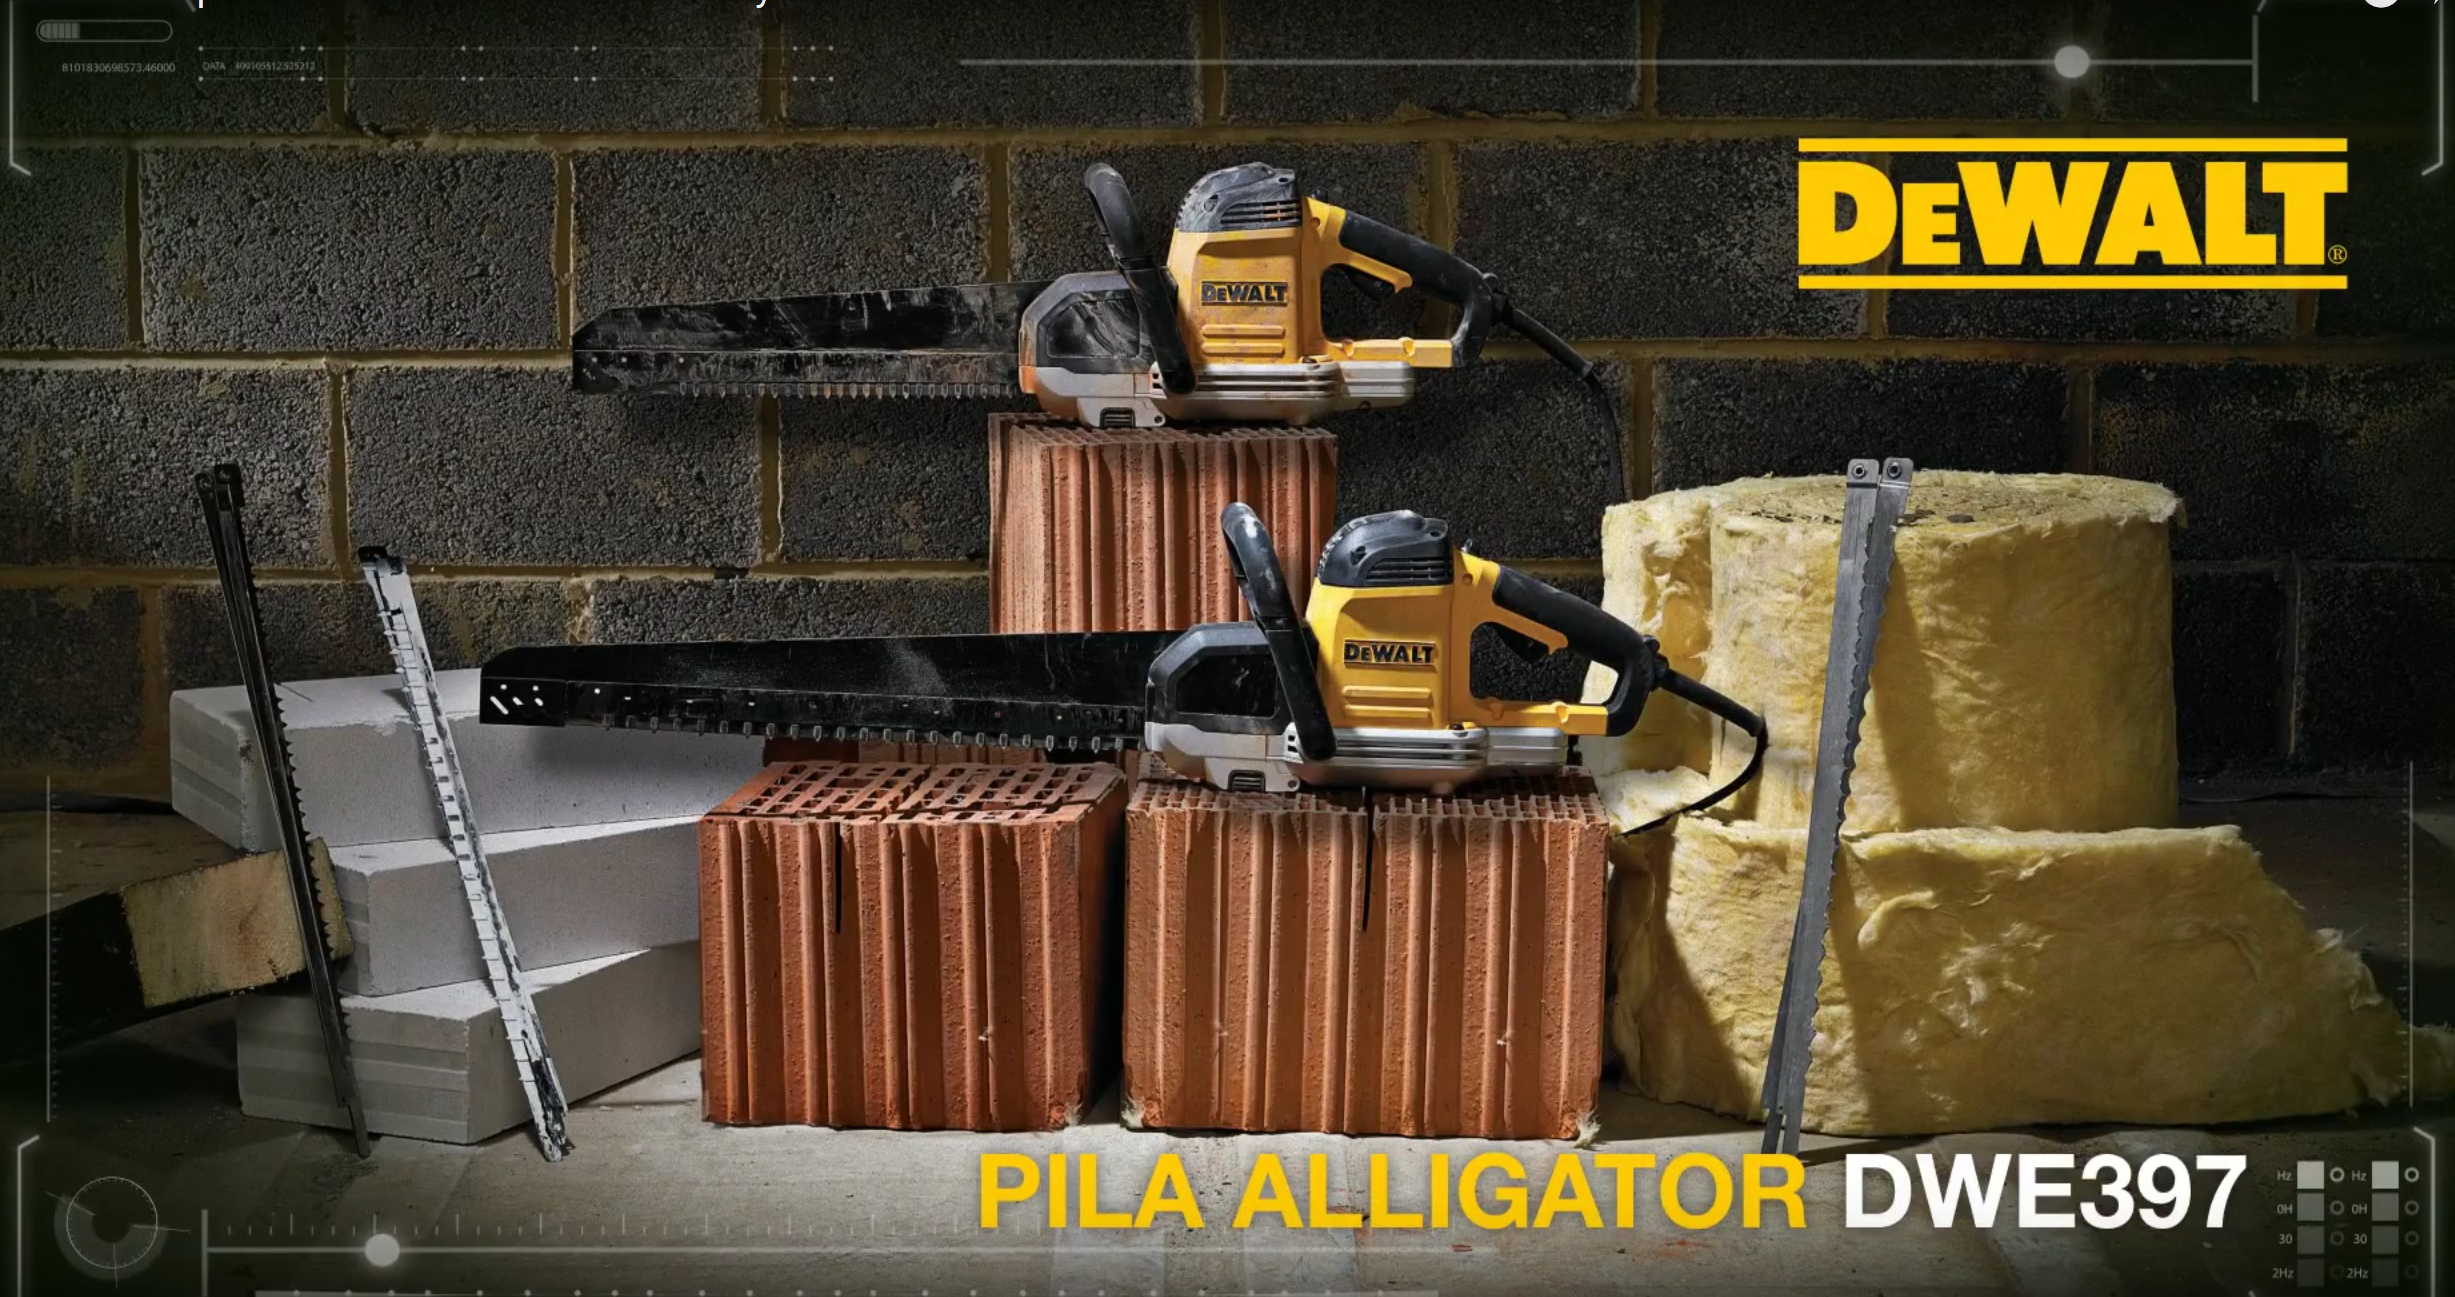 Pila Alligator